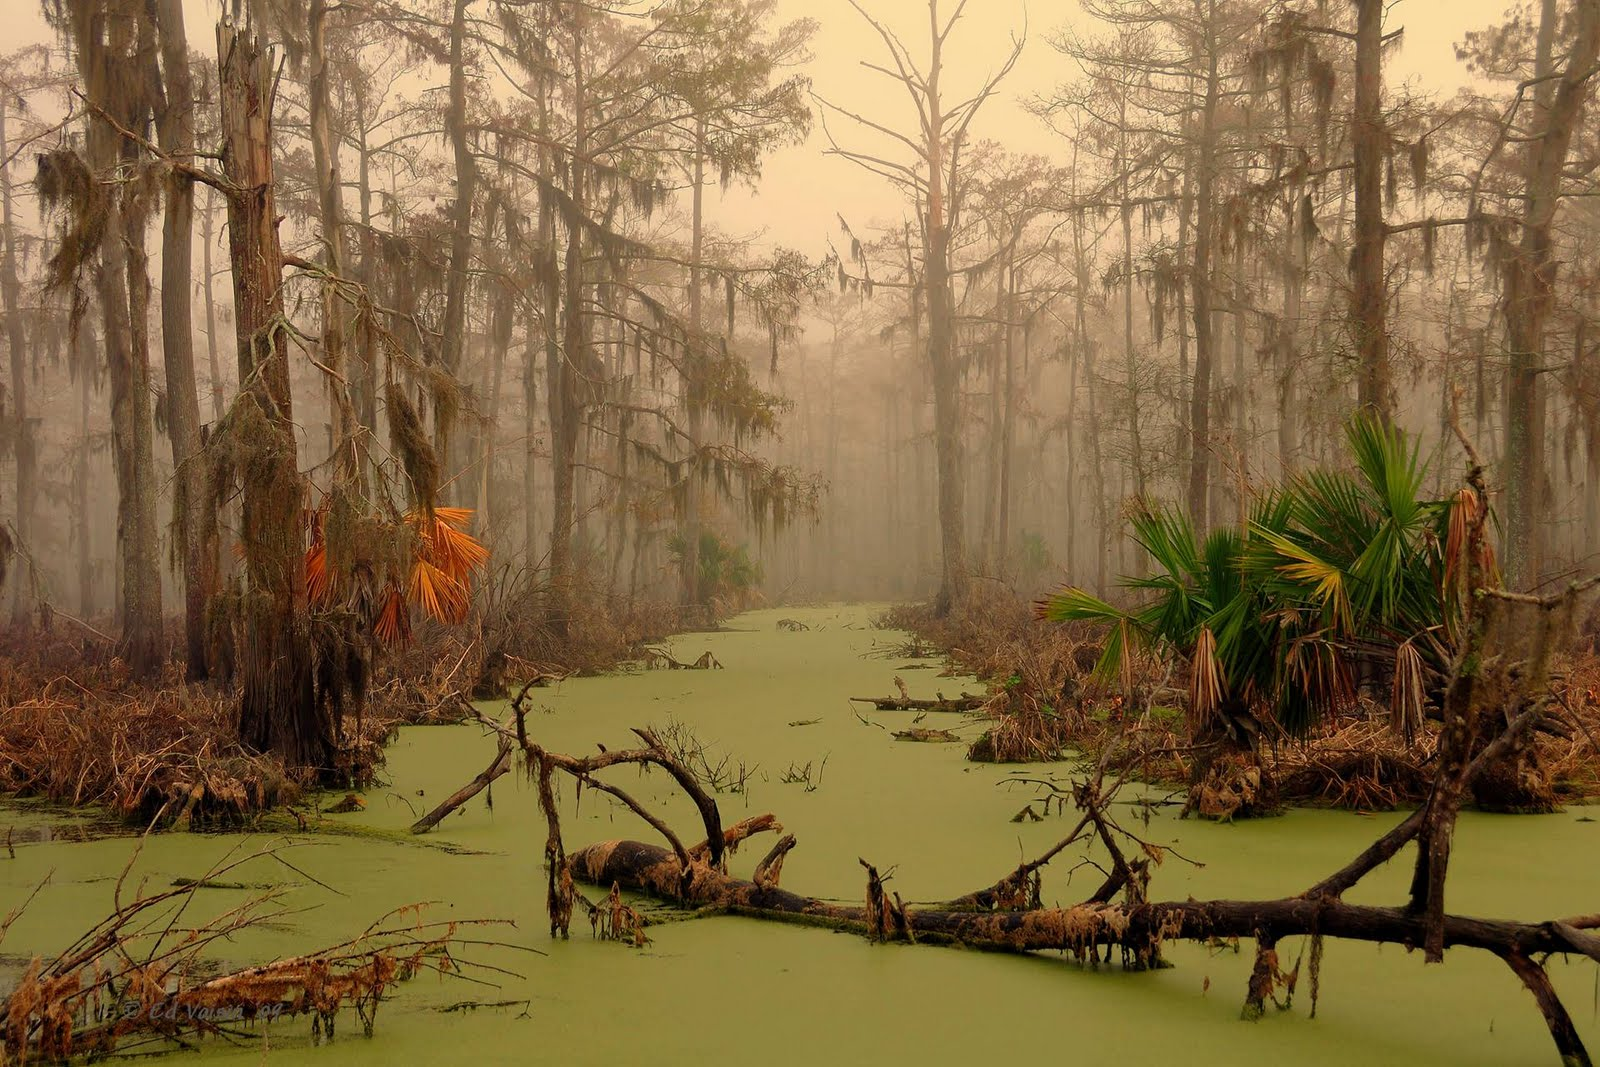 10 Eerie Places on Earth in Images - Listverse